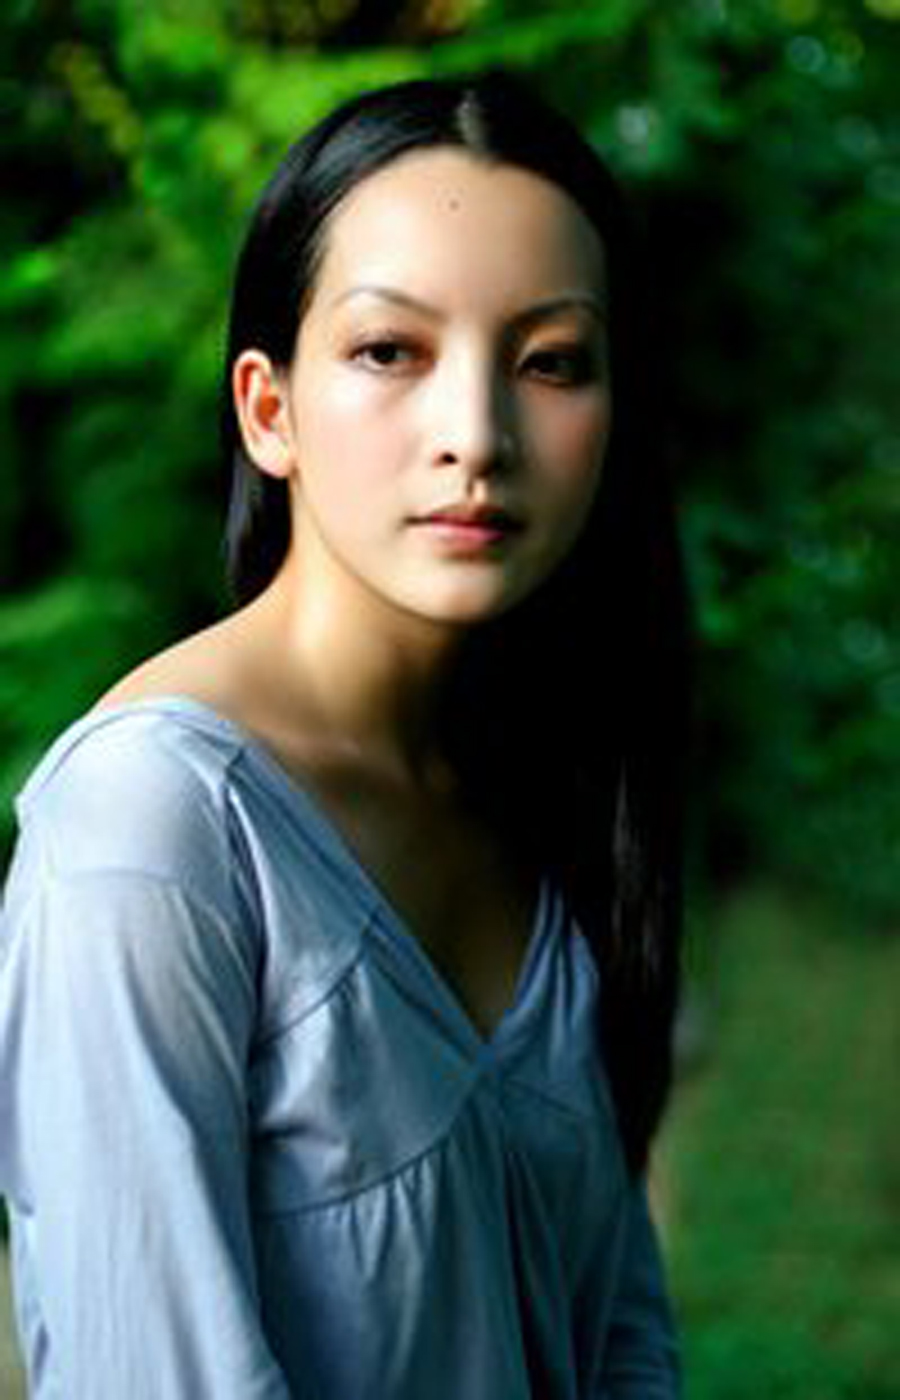 CEO, Founder, Director, Lina Linh Nga